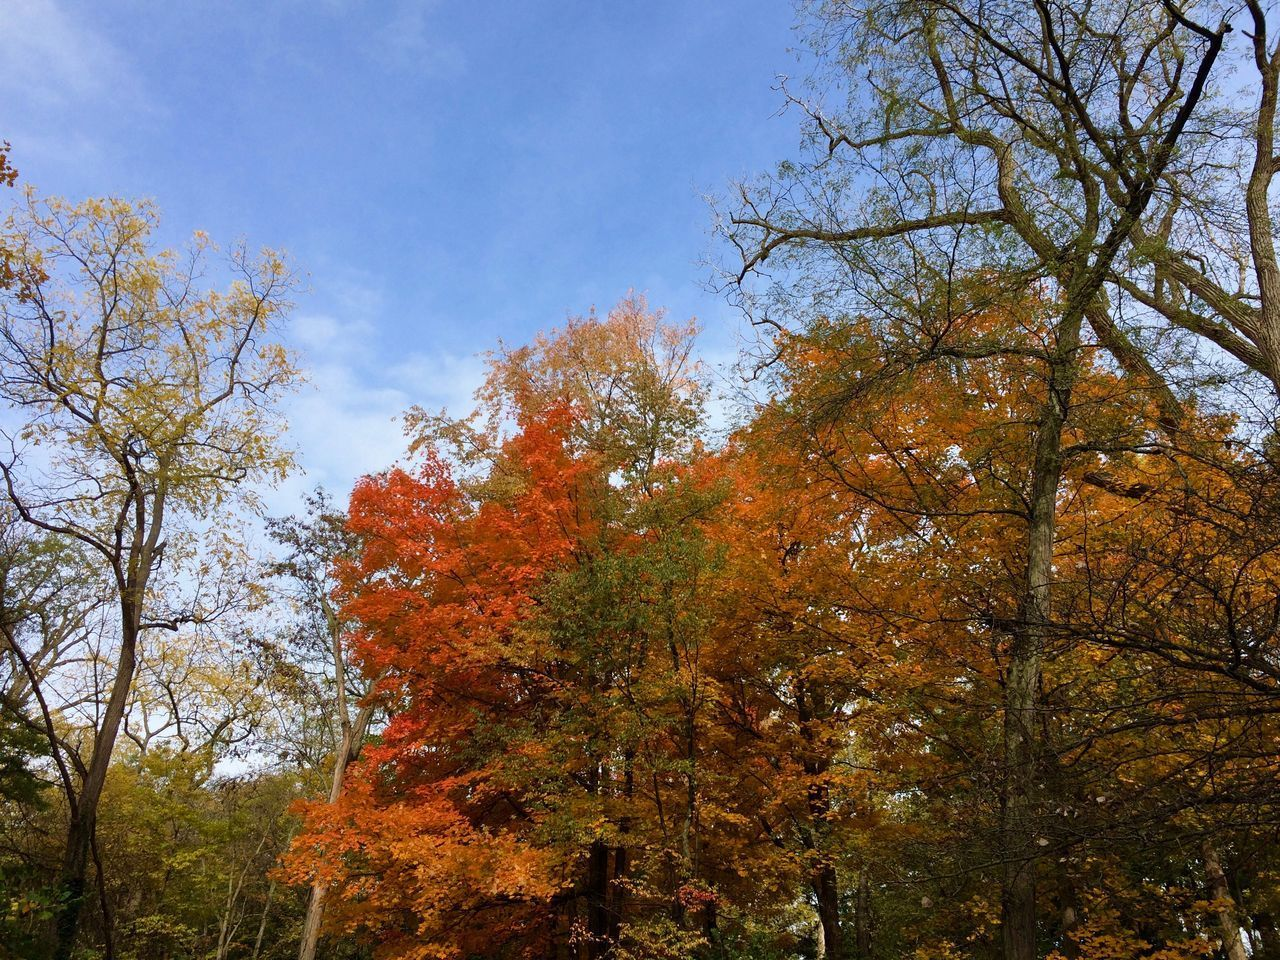 tree, autumn, change, plant, sky, beauty in nature, low angle view, growth, nature, orange color, tranquility, no people, branch, day, scenics - nature, outdoors, tranquil scene, non-urban scene, tree trunk, trunk, fall, tree canopy, natural condition